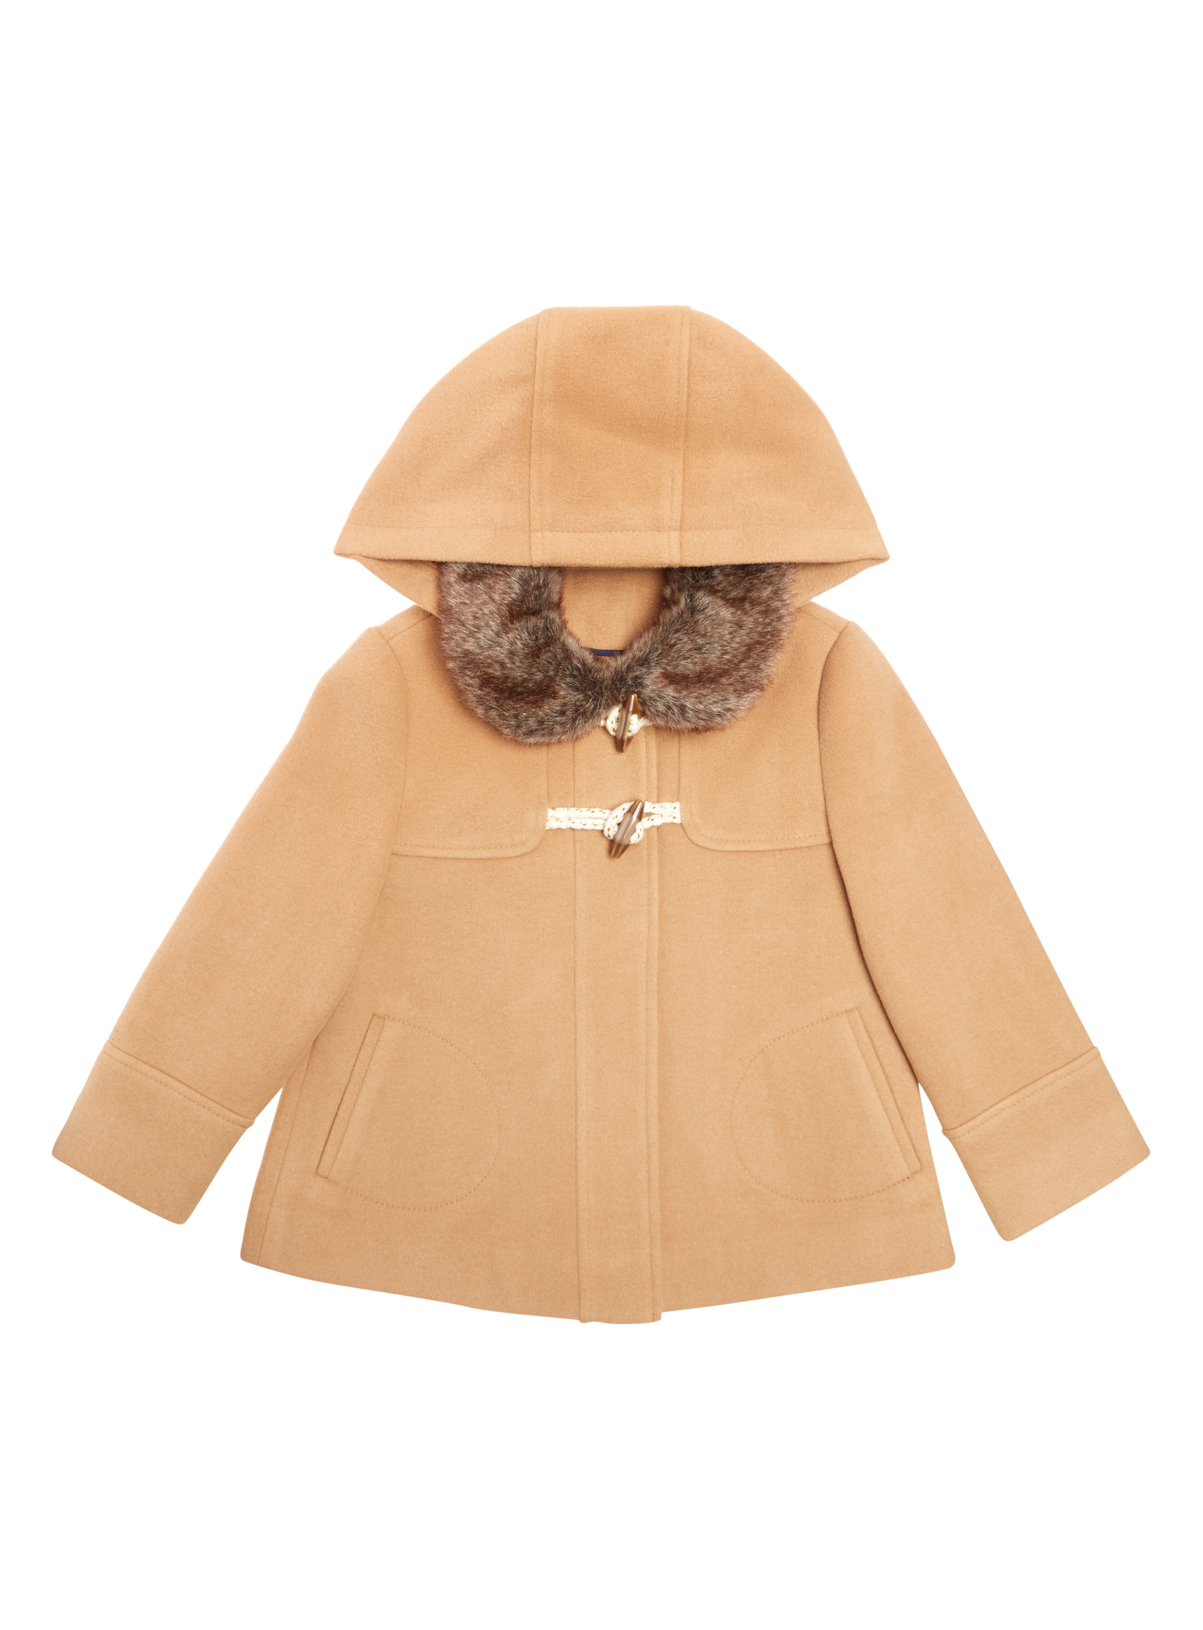 All Girl's Clothing Girls Brown Duffle Coat (9 months - 6 years ...